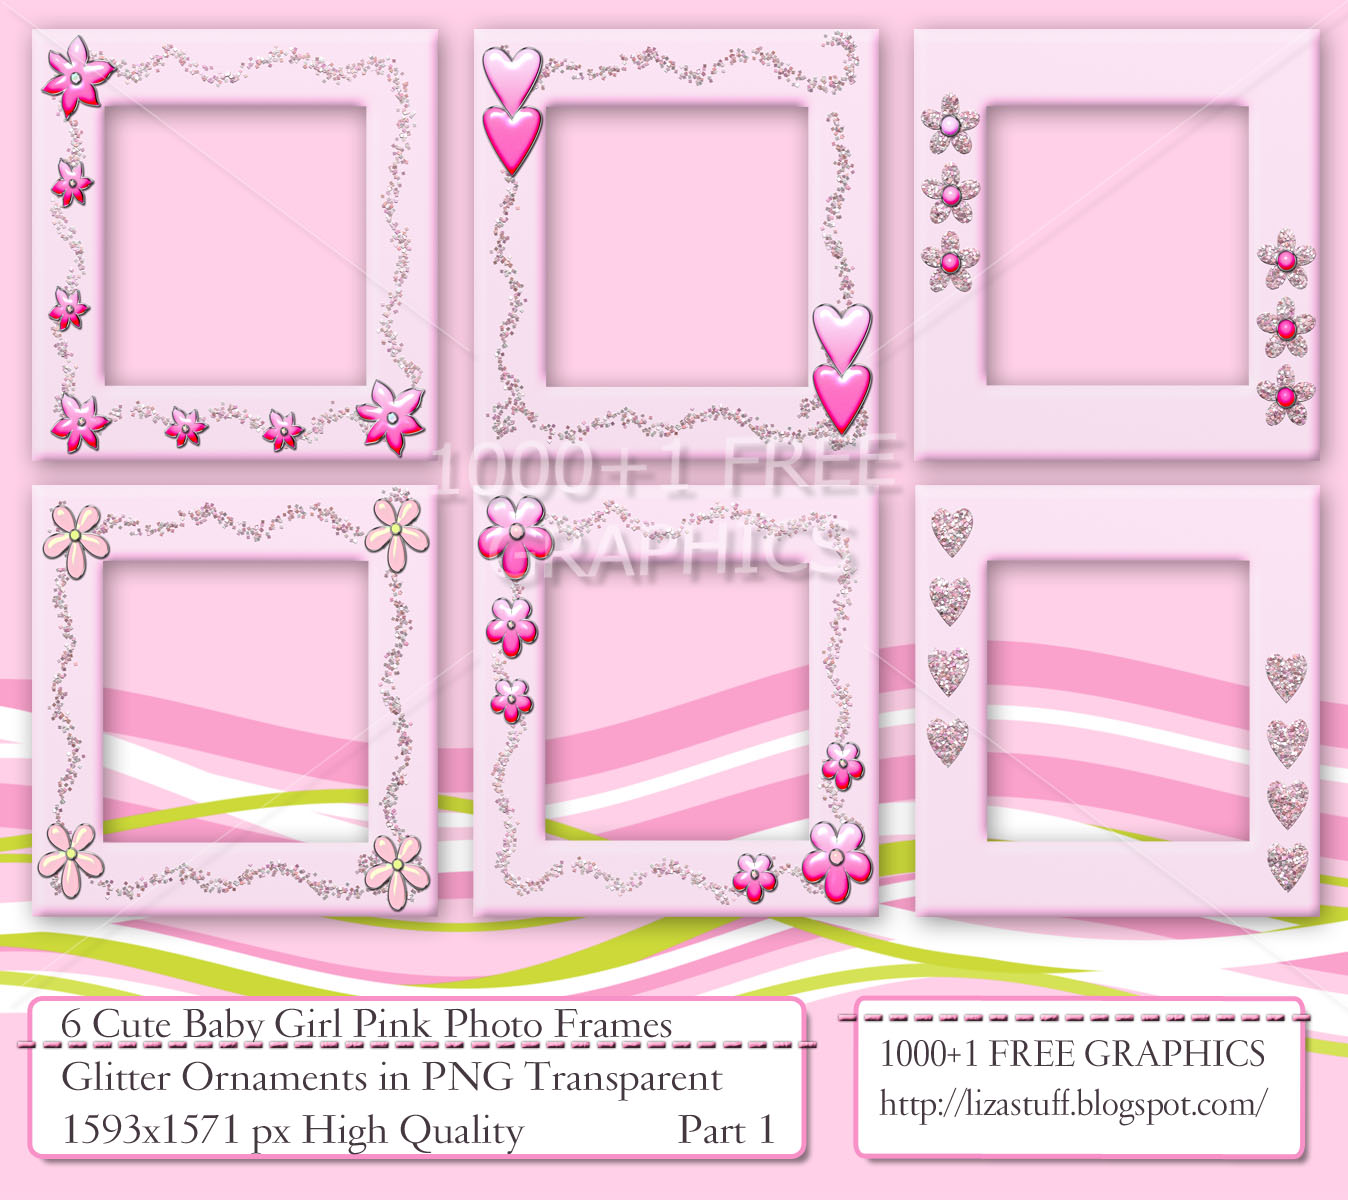 1000 1 free graphics 6 cute baby girl pink photo frames glitter